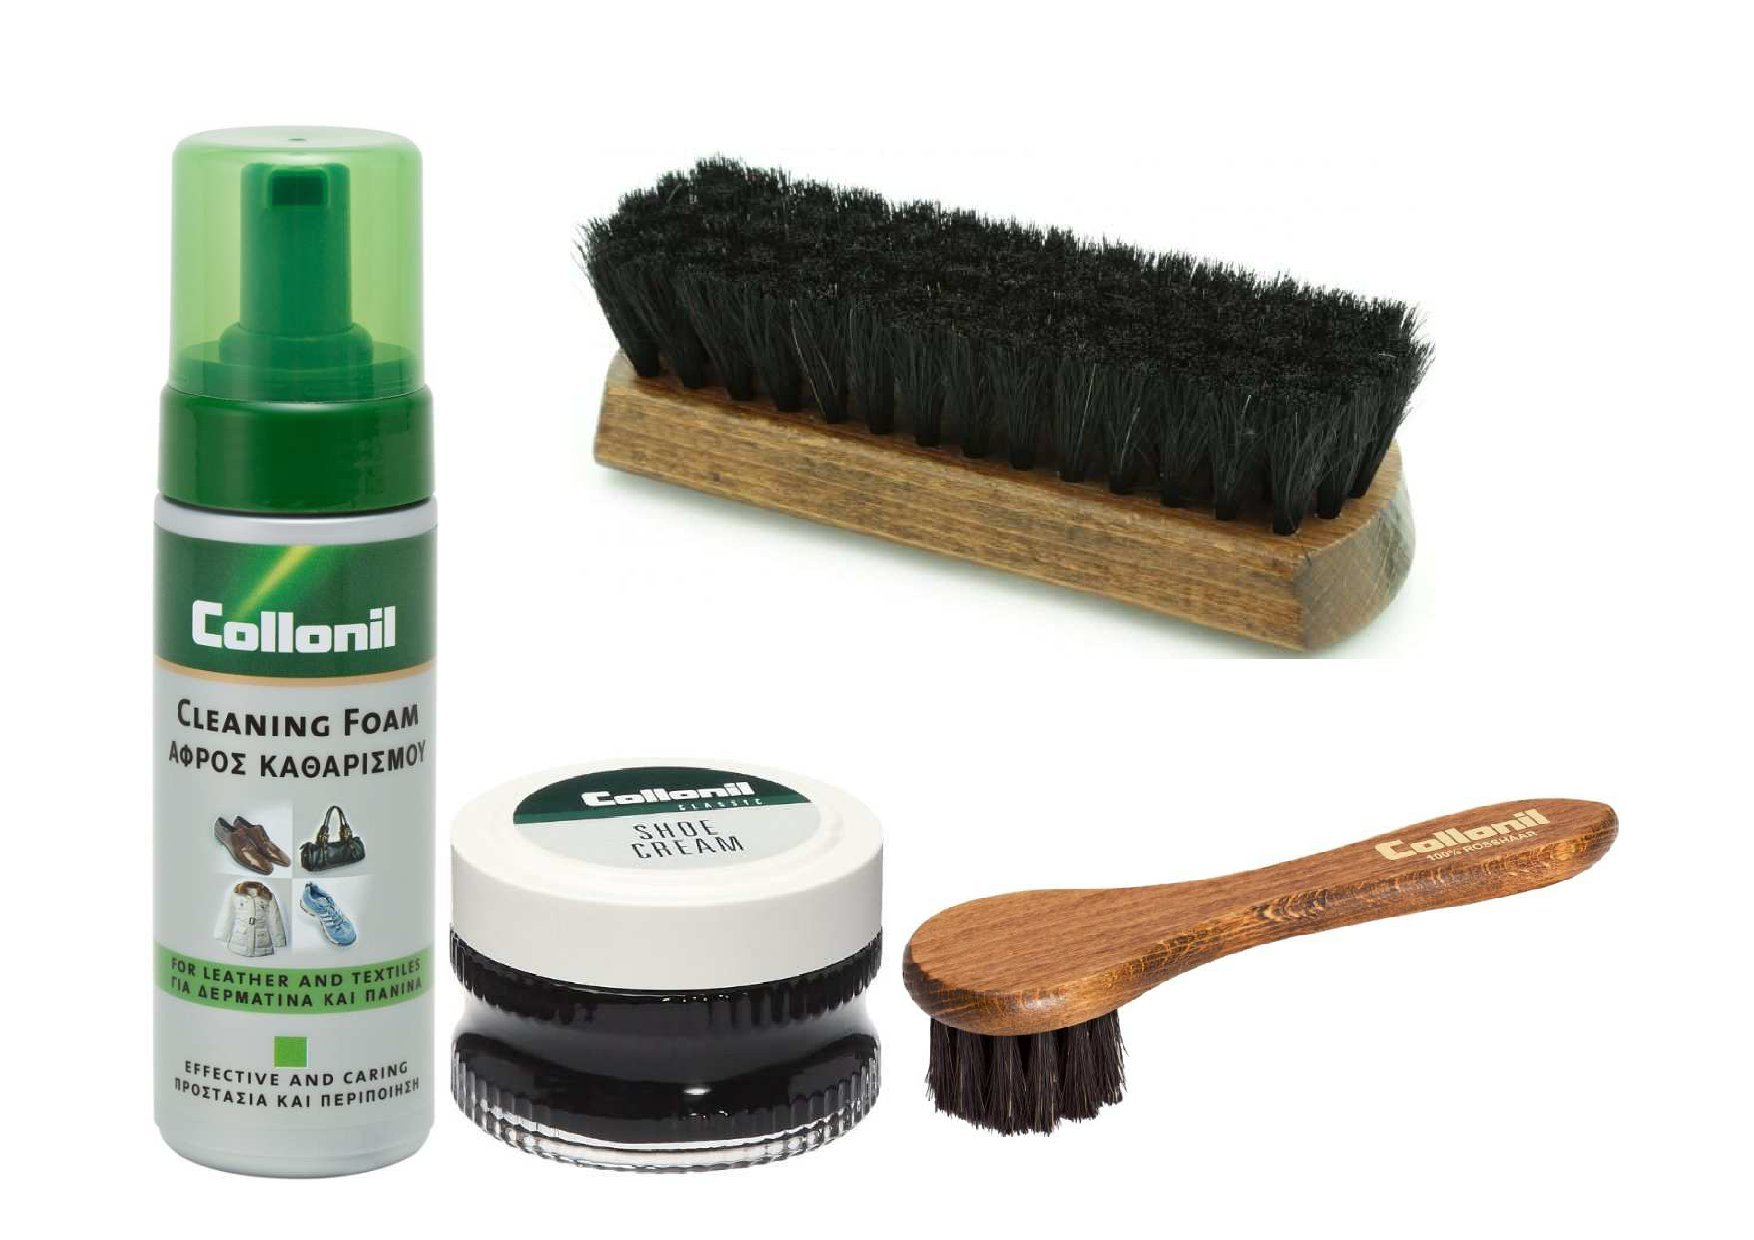 Collonil Shoe Care Travel Kit For Fine Smooth Leather And For Kids Shoes 15% Off (Red) by Collonil (Image #1)